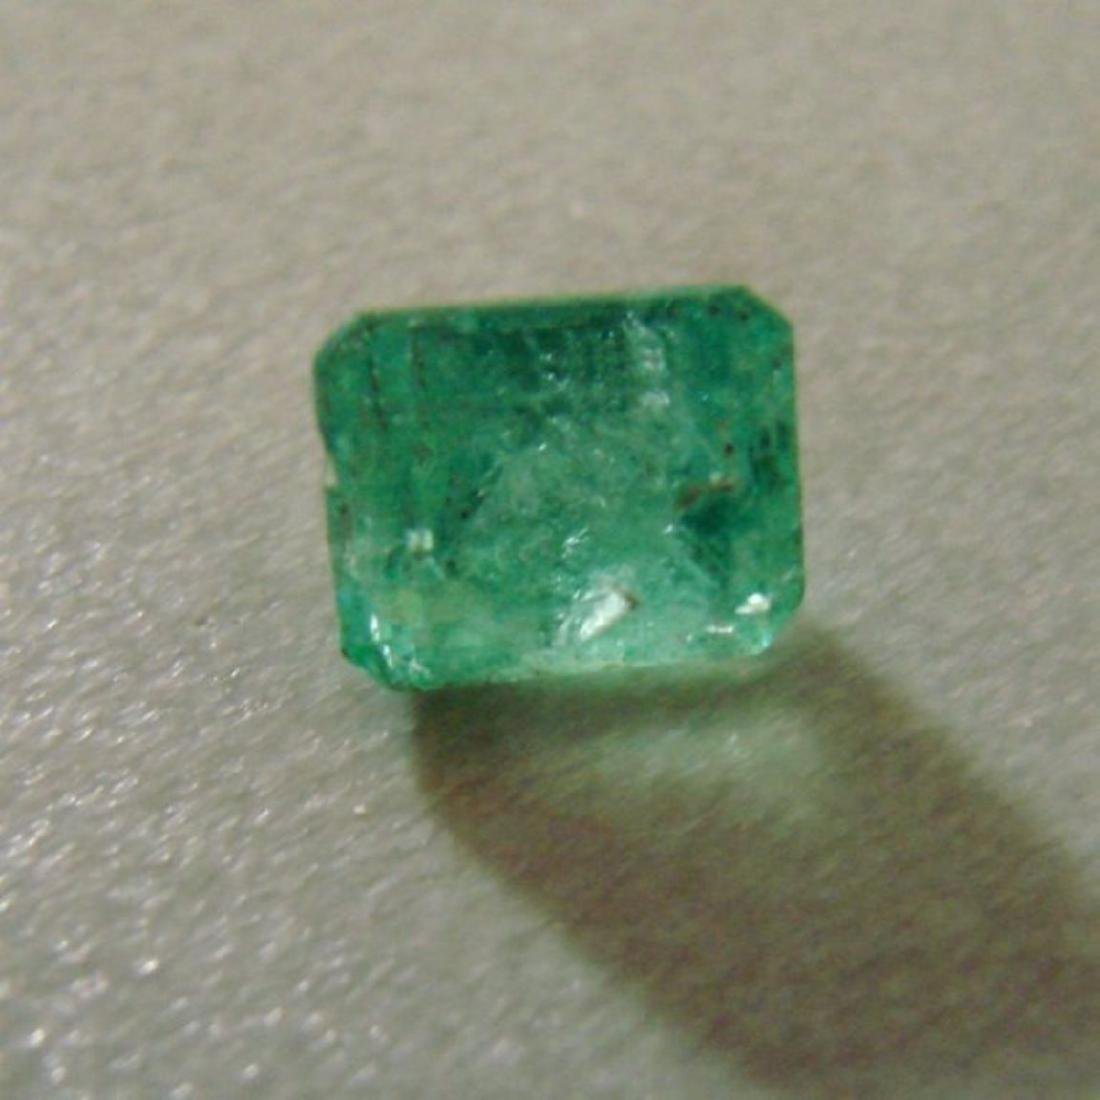 Colombial Emerald Octagon 1.71Ct 7.4x6.2x5.5 mm - 2